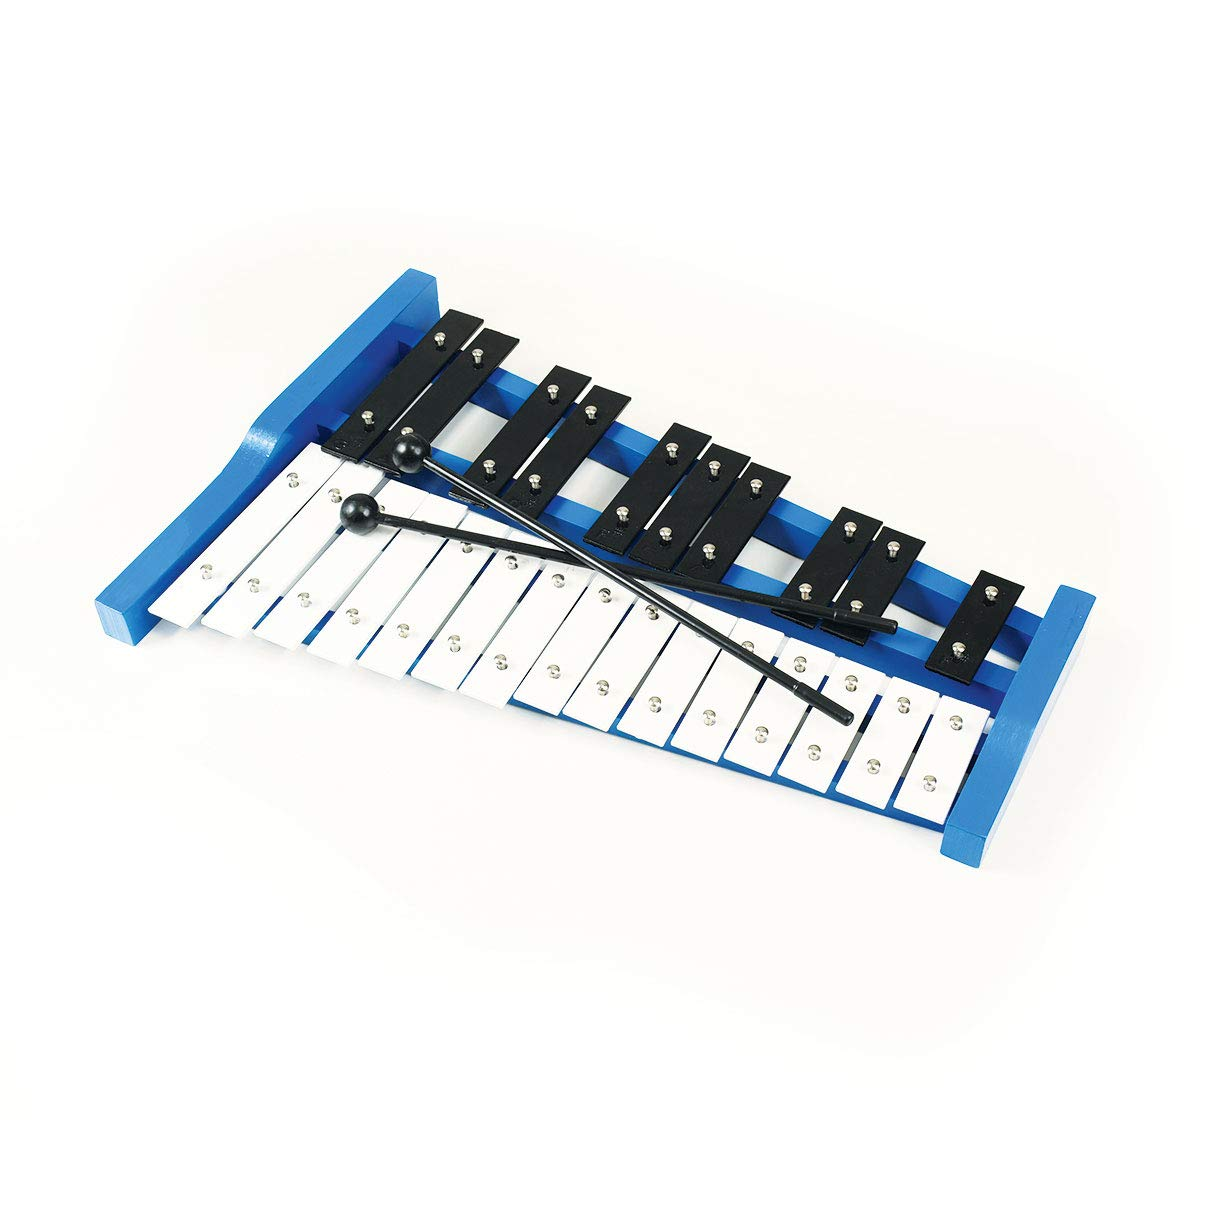 Professional Blue Wooden Soprano Glockenspiel Xylophone with 25 Metal Keys for Adults and Kids - Includes 2 Plastic Beaters by Cara & Co